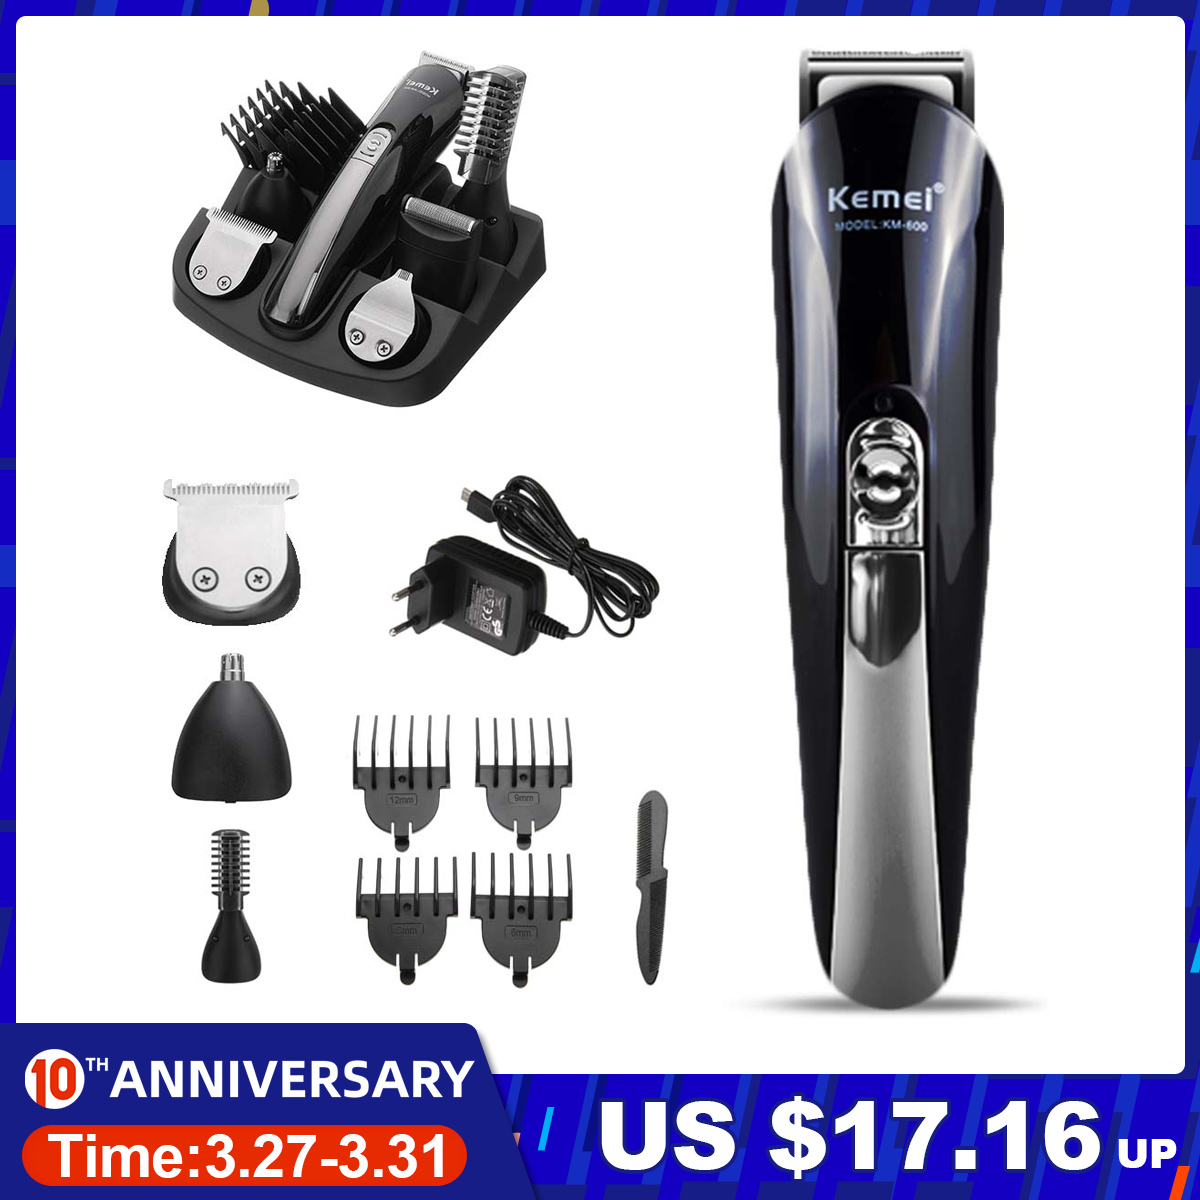 Kemei 11 In 1 Multifunction Hair Clipper Professional Hair Trimmer Electric Beard Trimmer Hair Cutting Machine Trimer Cutter 5